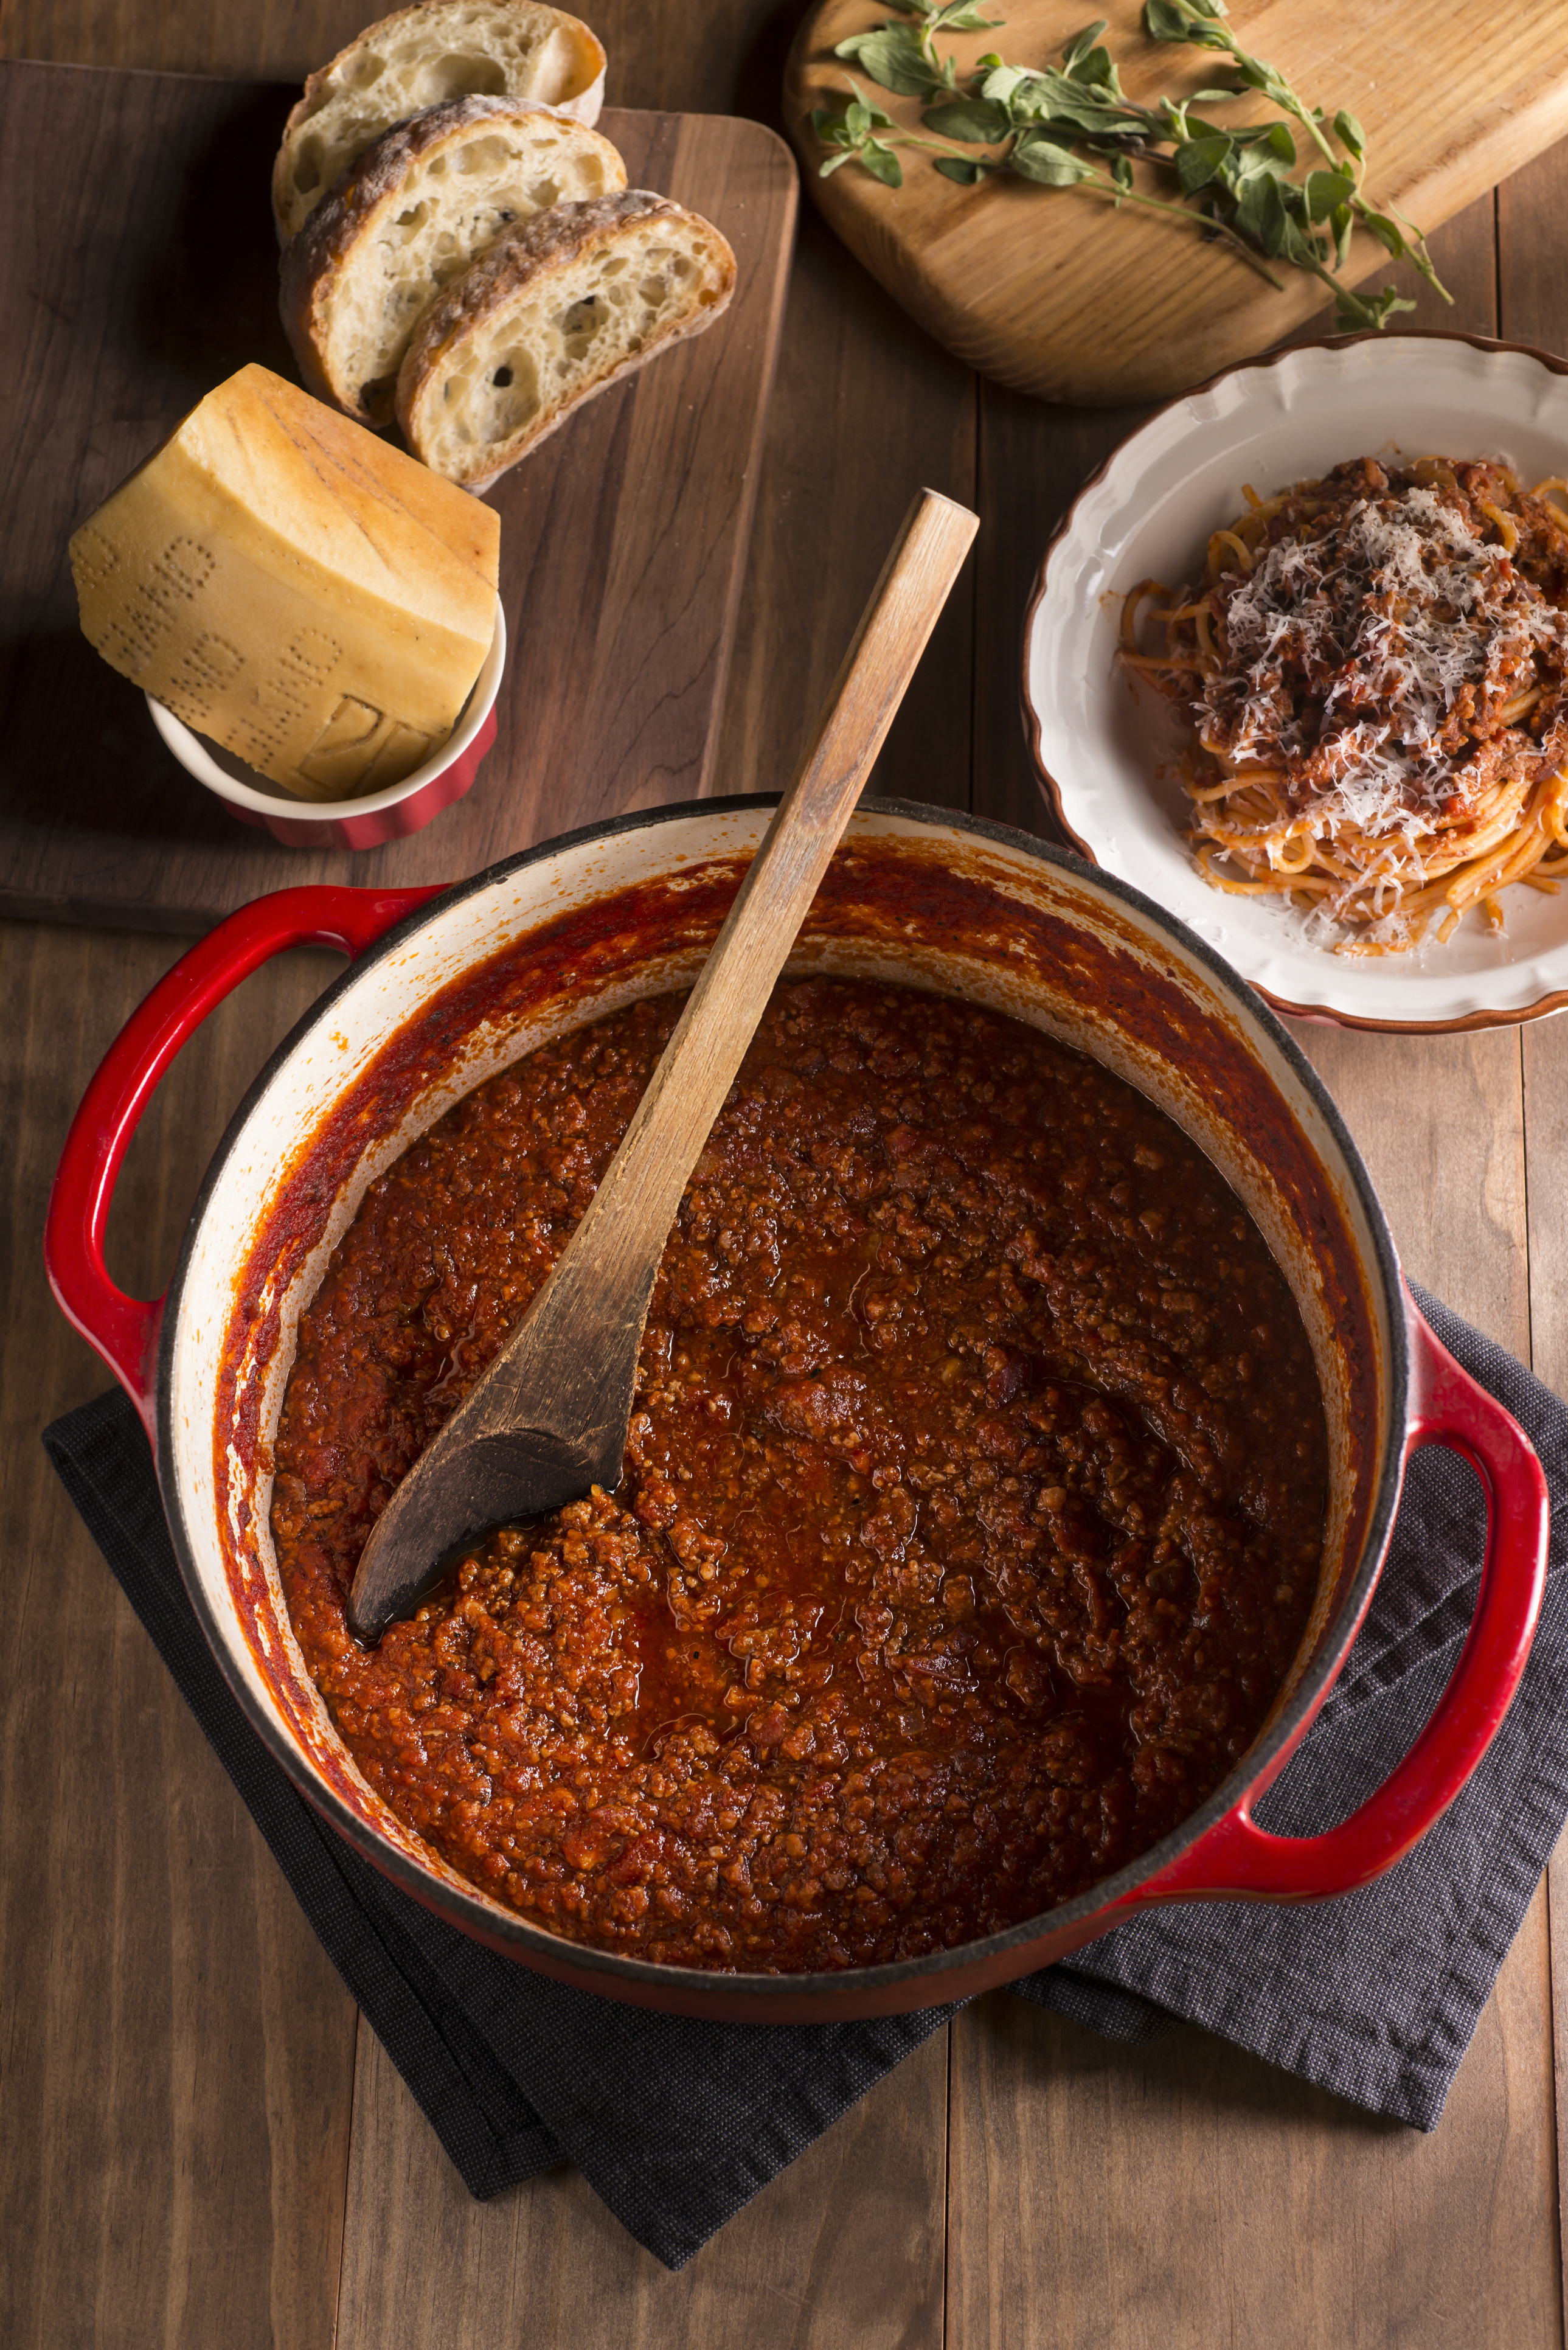 Bolognese Sauce Cooking In Enameled Cast Iron Dutch Oven